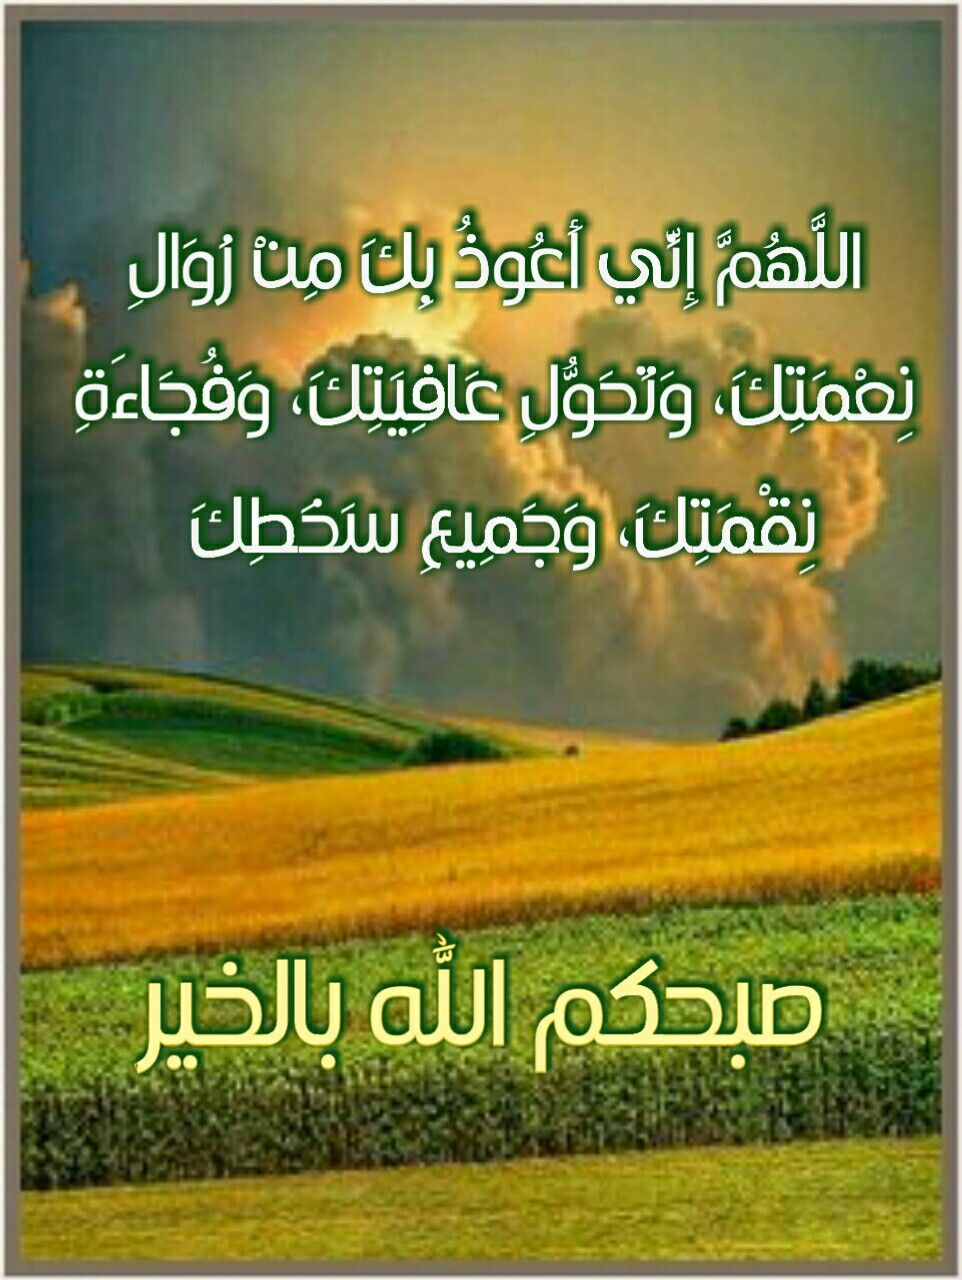 صباح الخير ذكر دعاء Morning Images Love Wallpaper Lockscreen